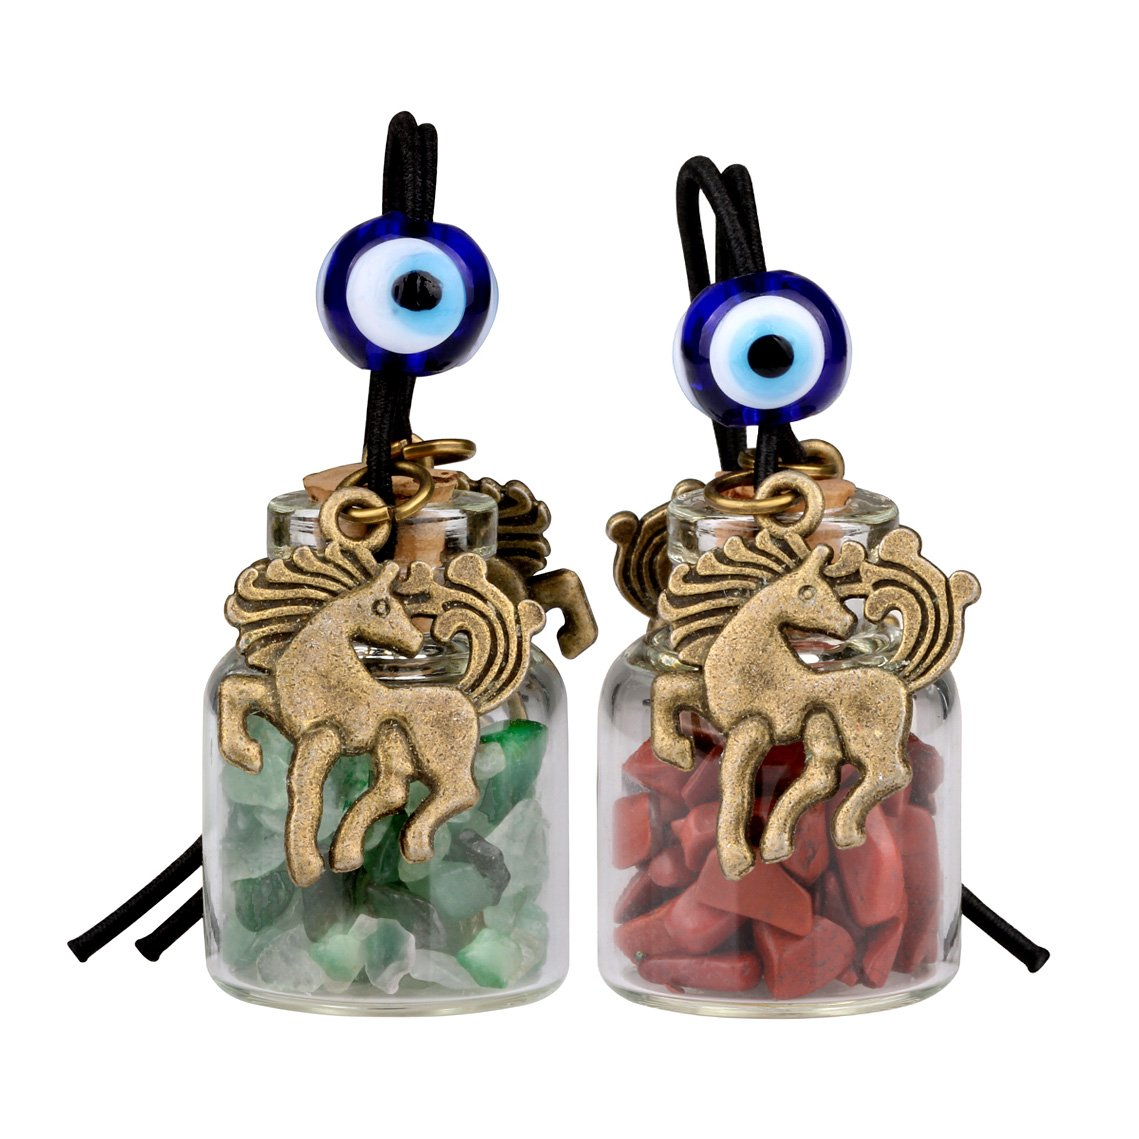 Unicorn Small Car Charms or Home Decor Gem Bottles Green Quartz and Red Jasper Protection Amulets